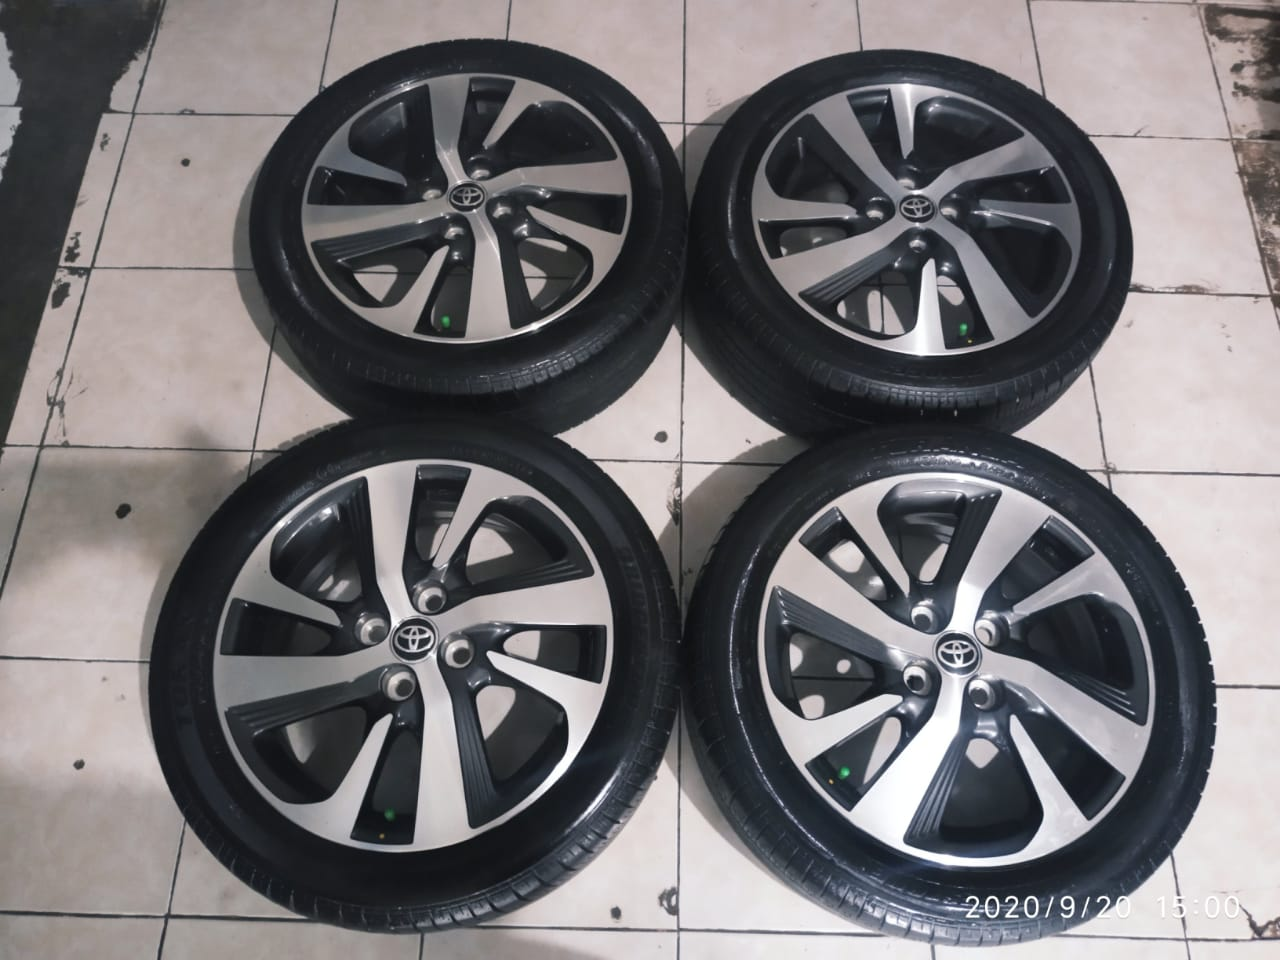 STD YARIS TRD RING 16 BAN BS 195 50 R16